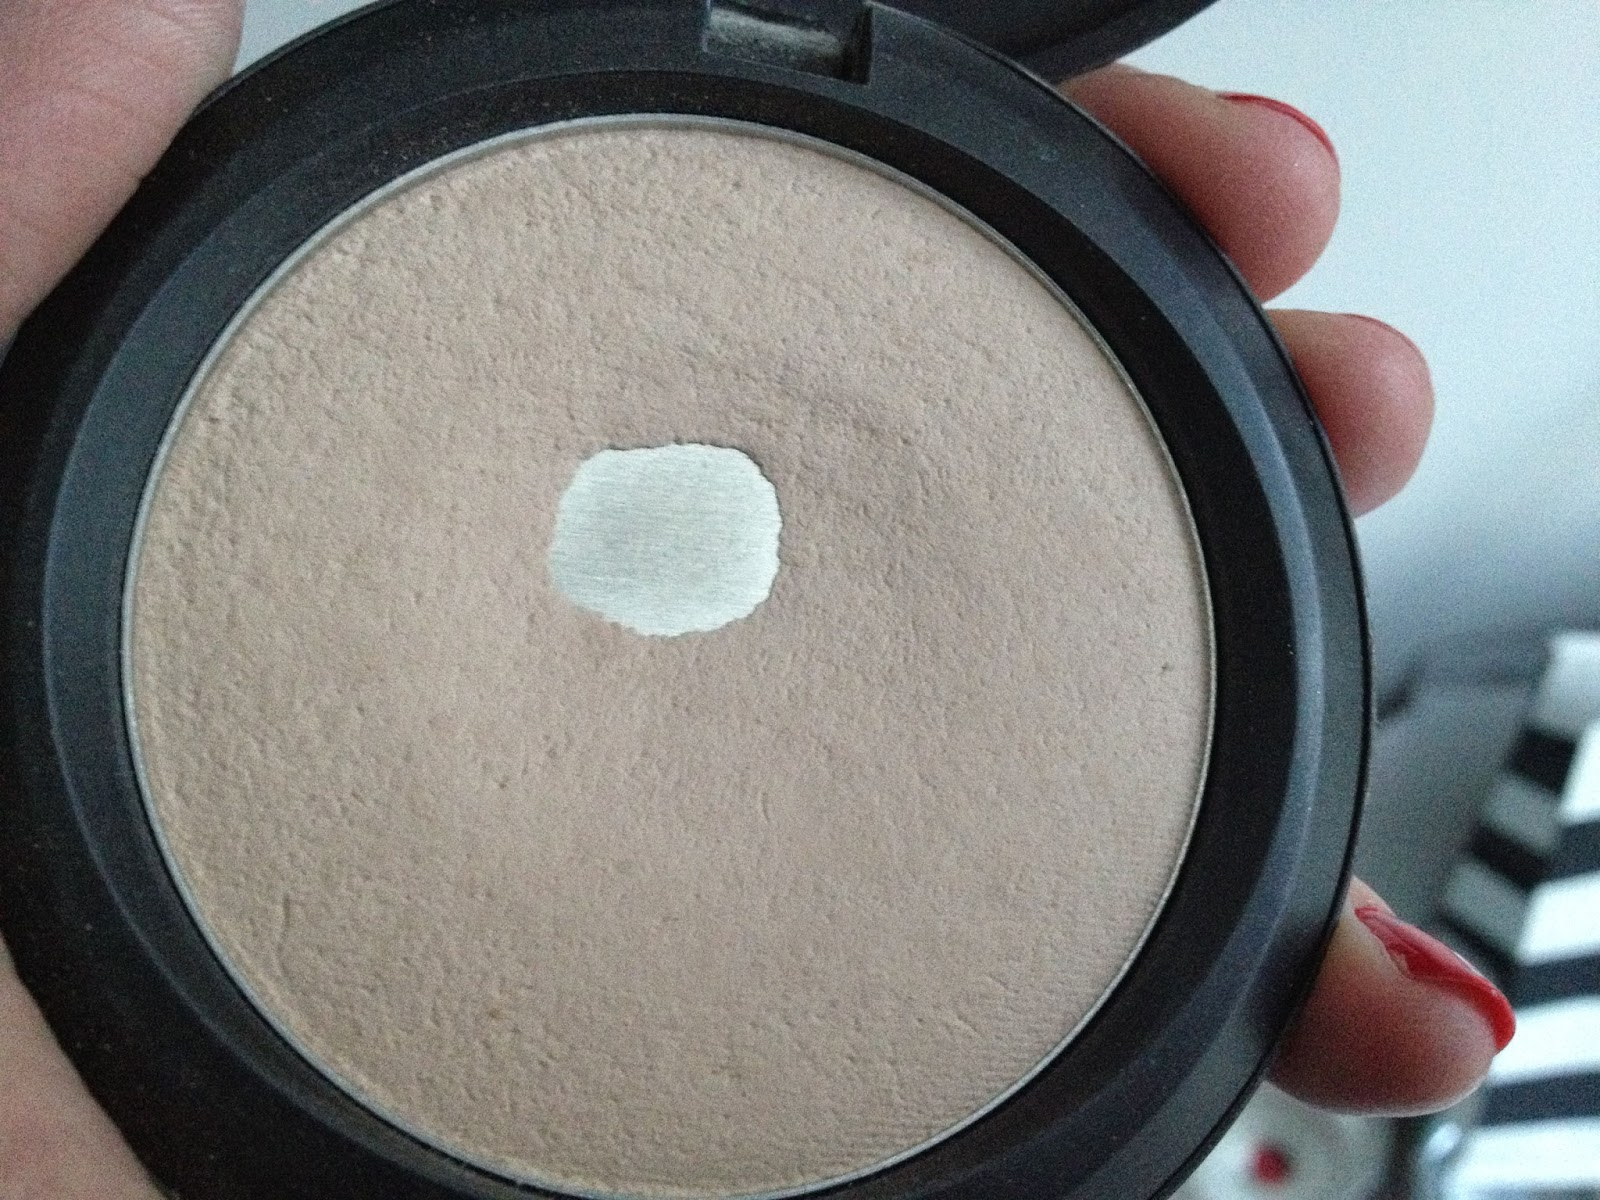 MAC Blot Powder compact in medium